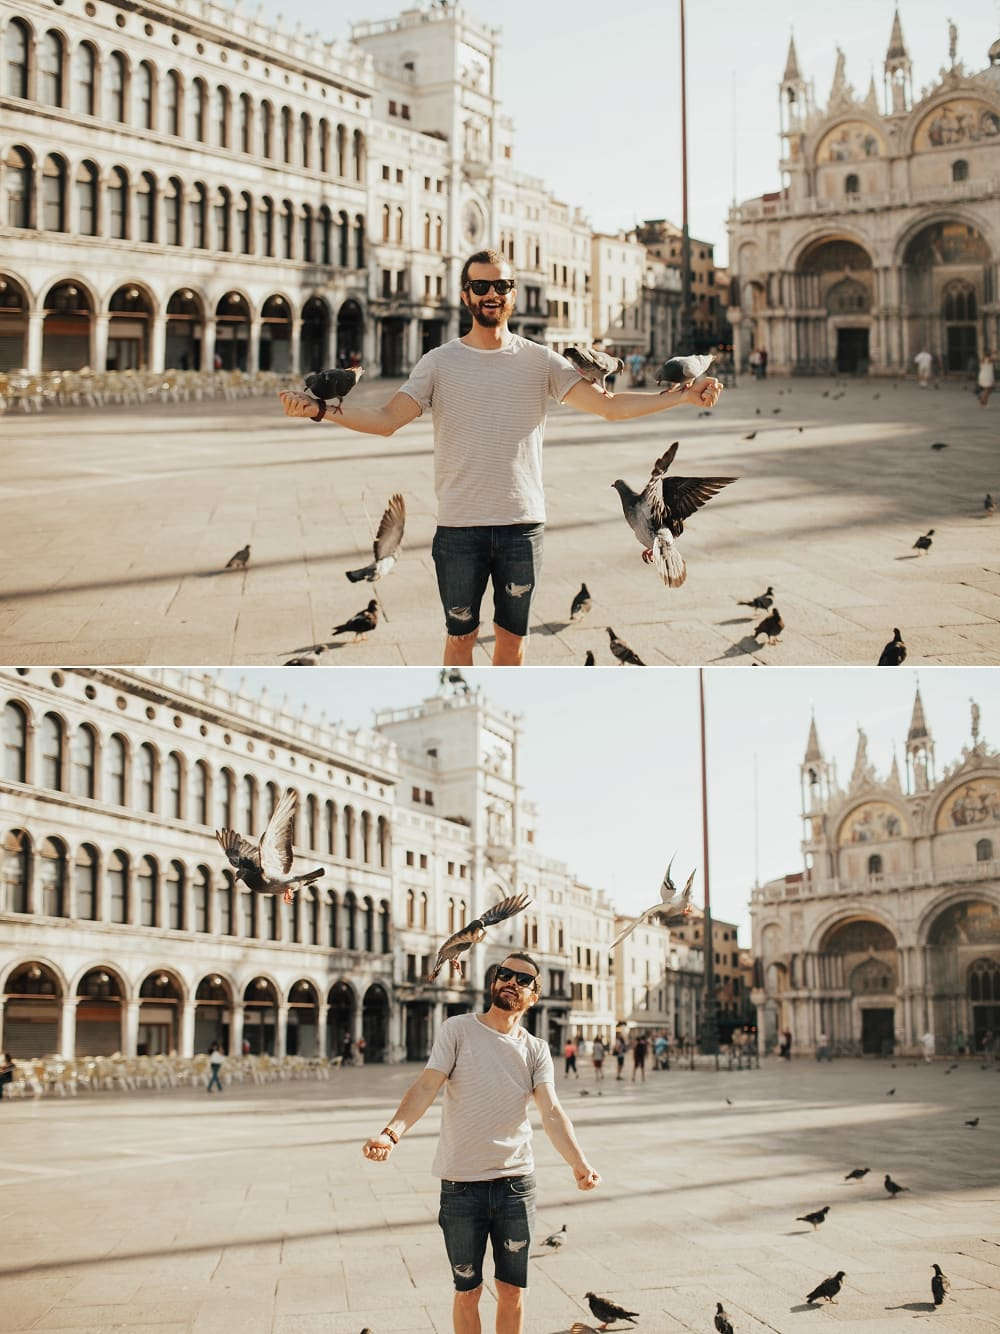 pigeons at st mark's square